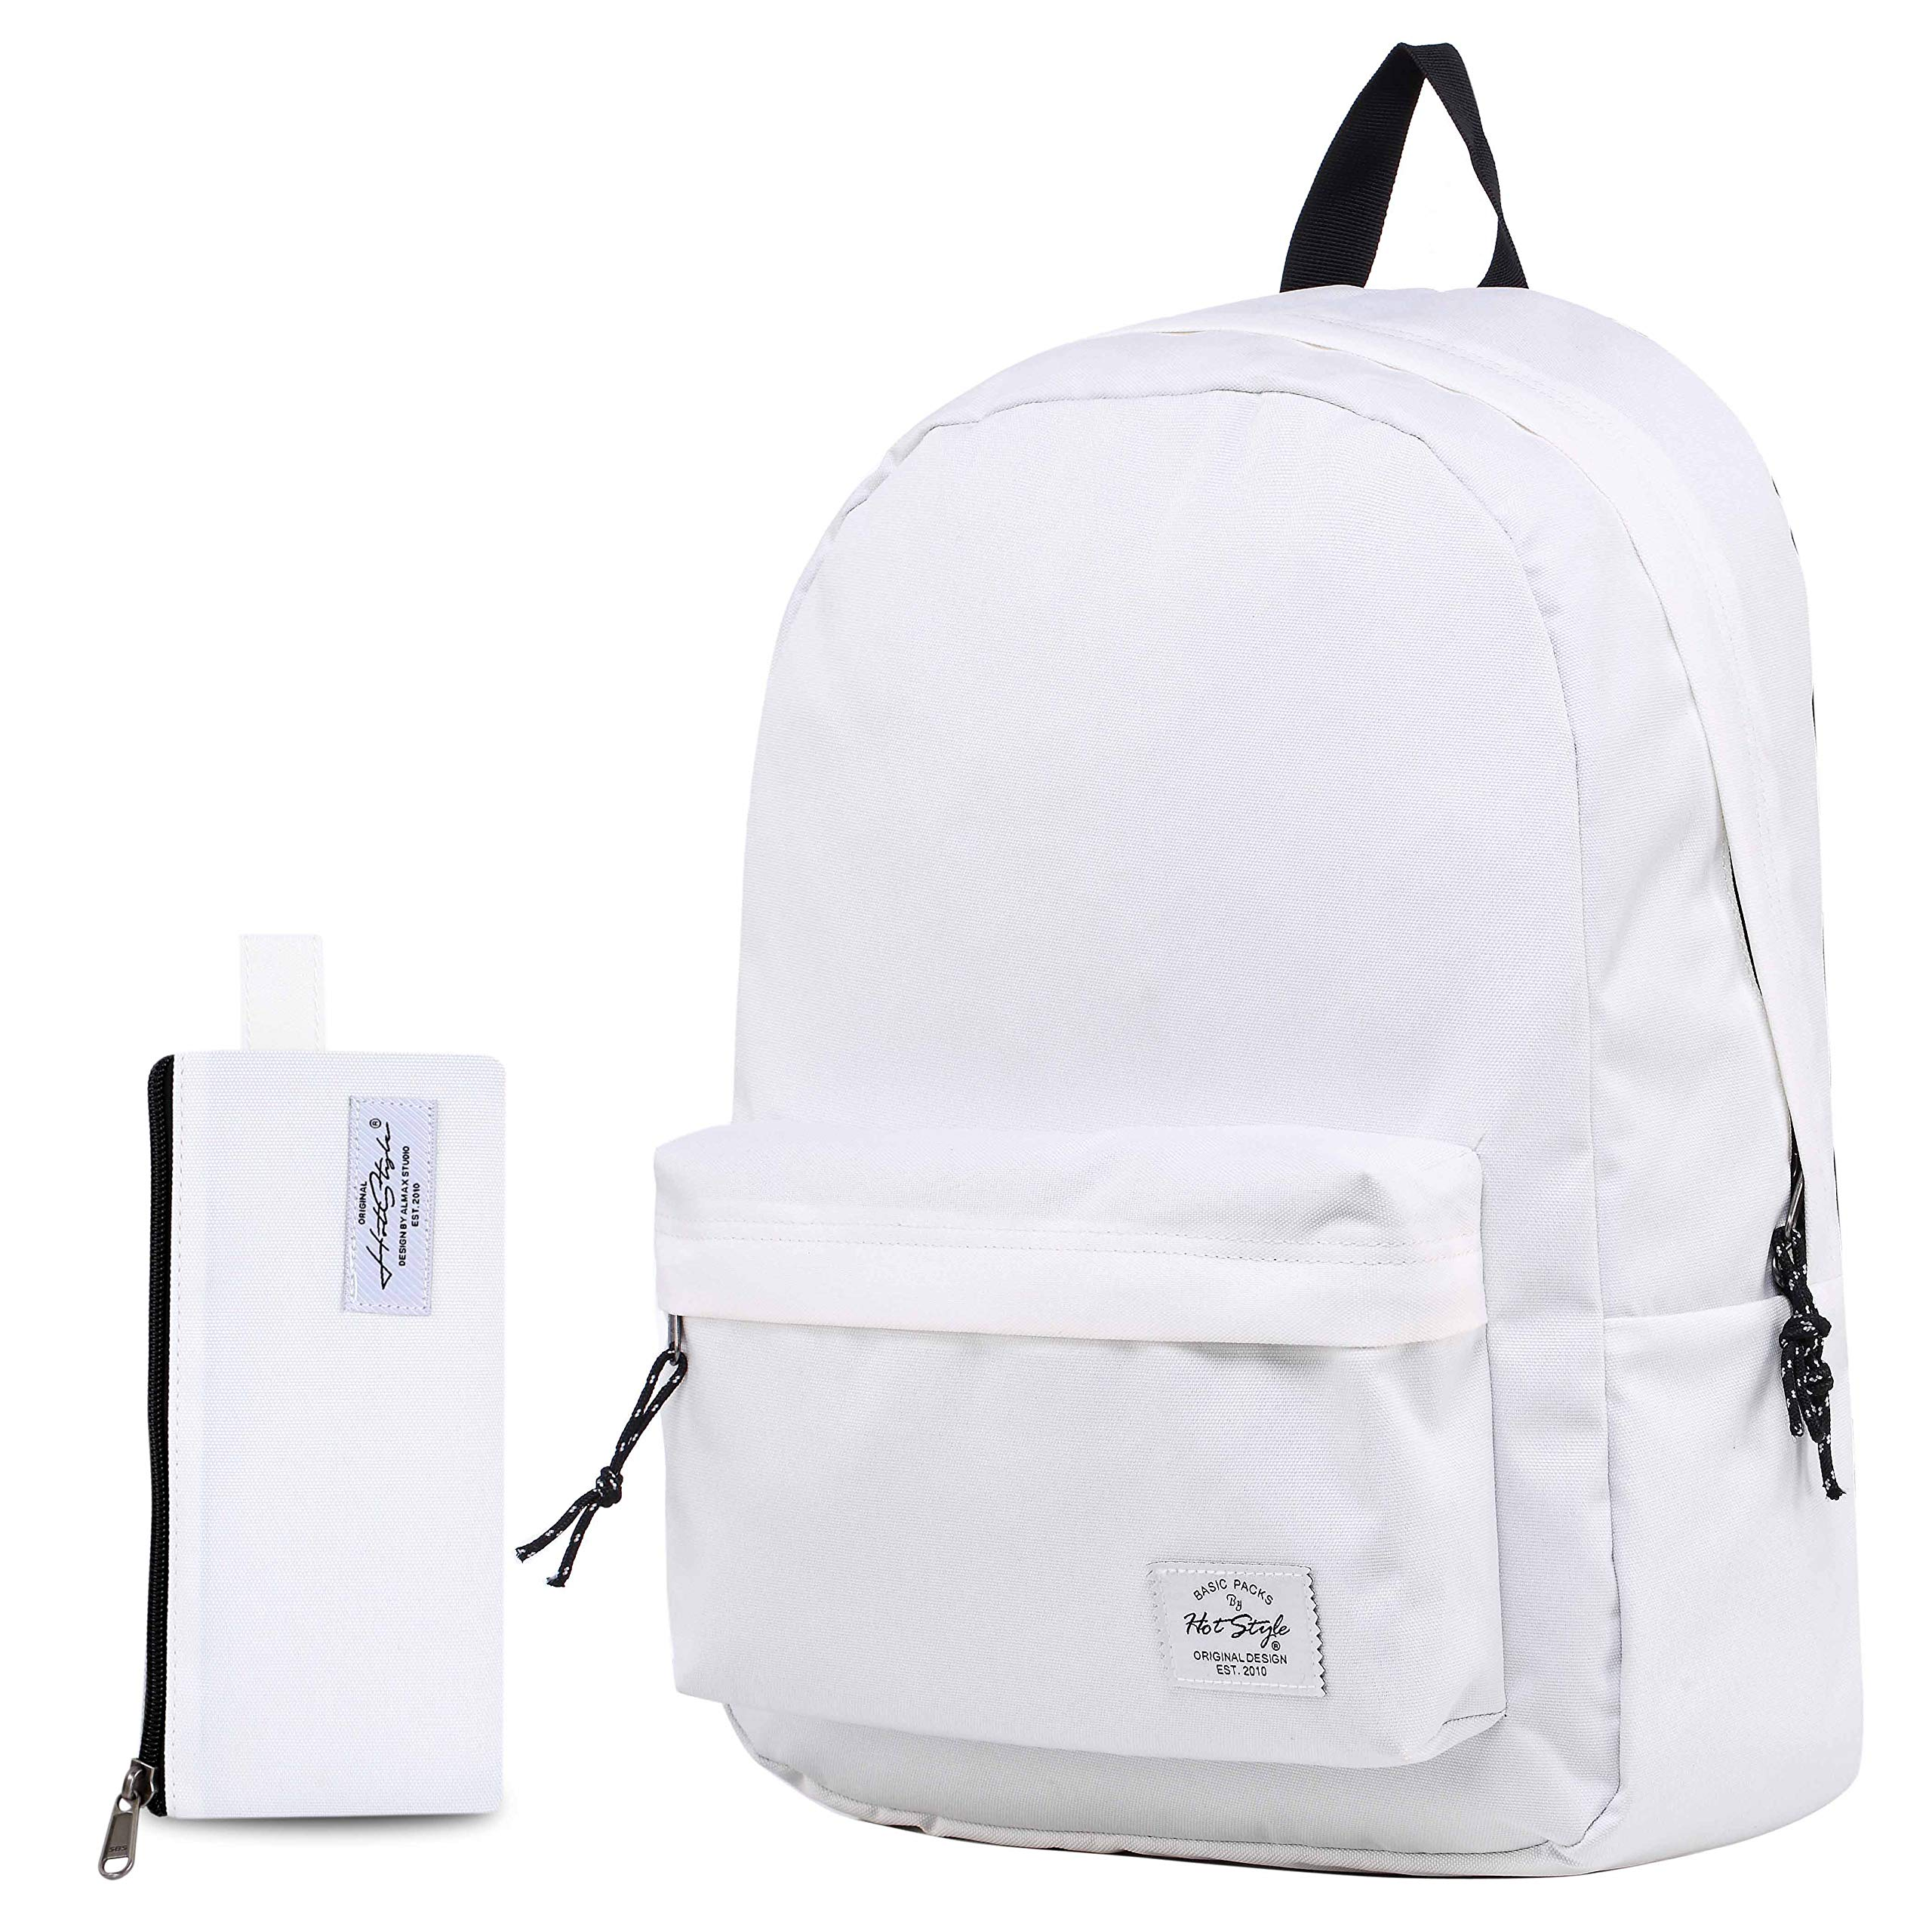 SIMPLAY Classic School Backpack Bookbag, White(with marching pencil bag)